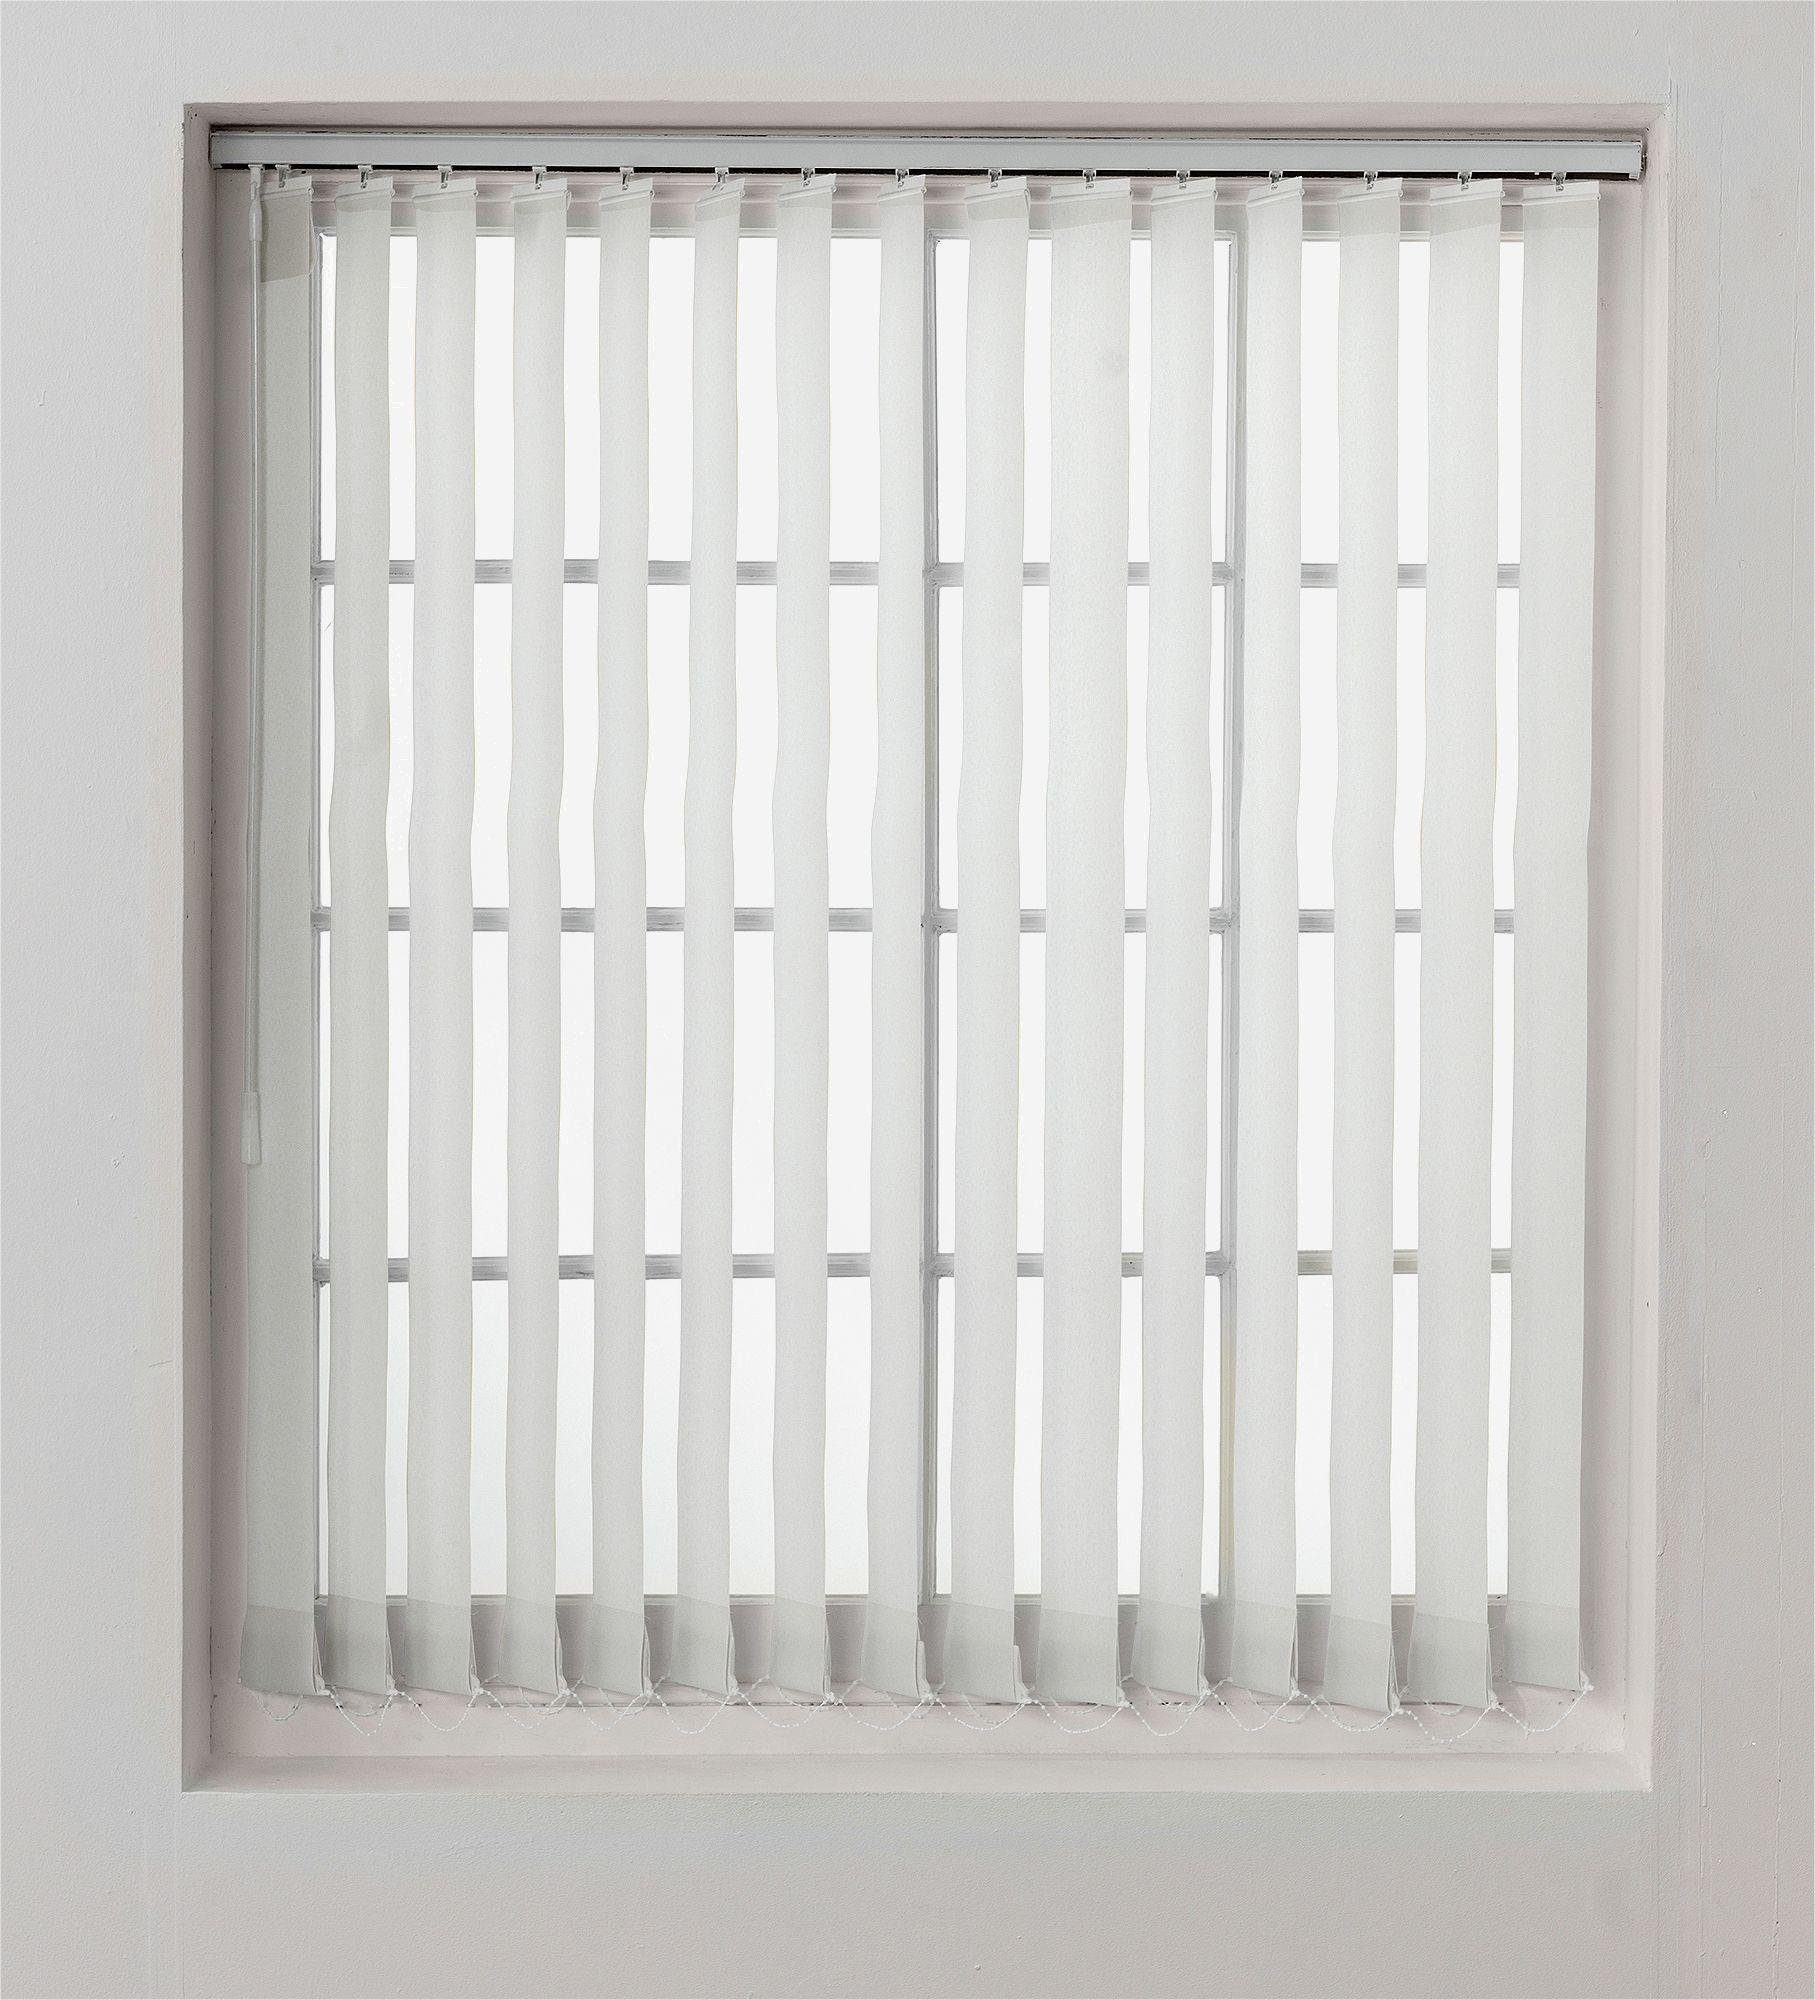 Buy Argos Home Vertical Blind Slats Pack 4 5ft White Blinds